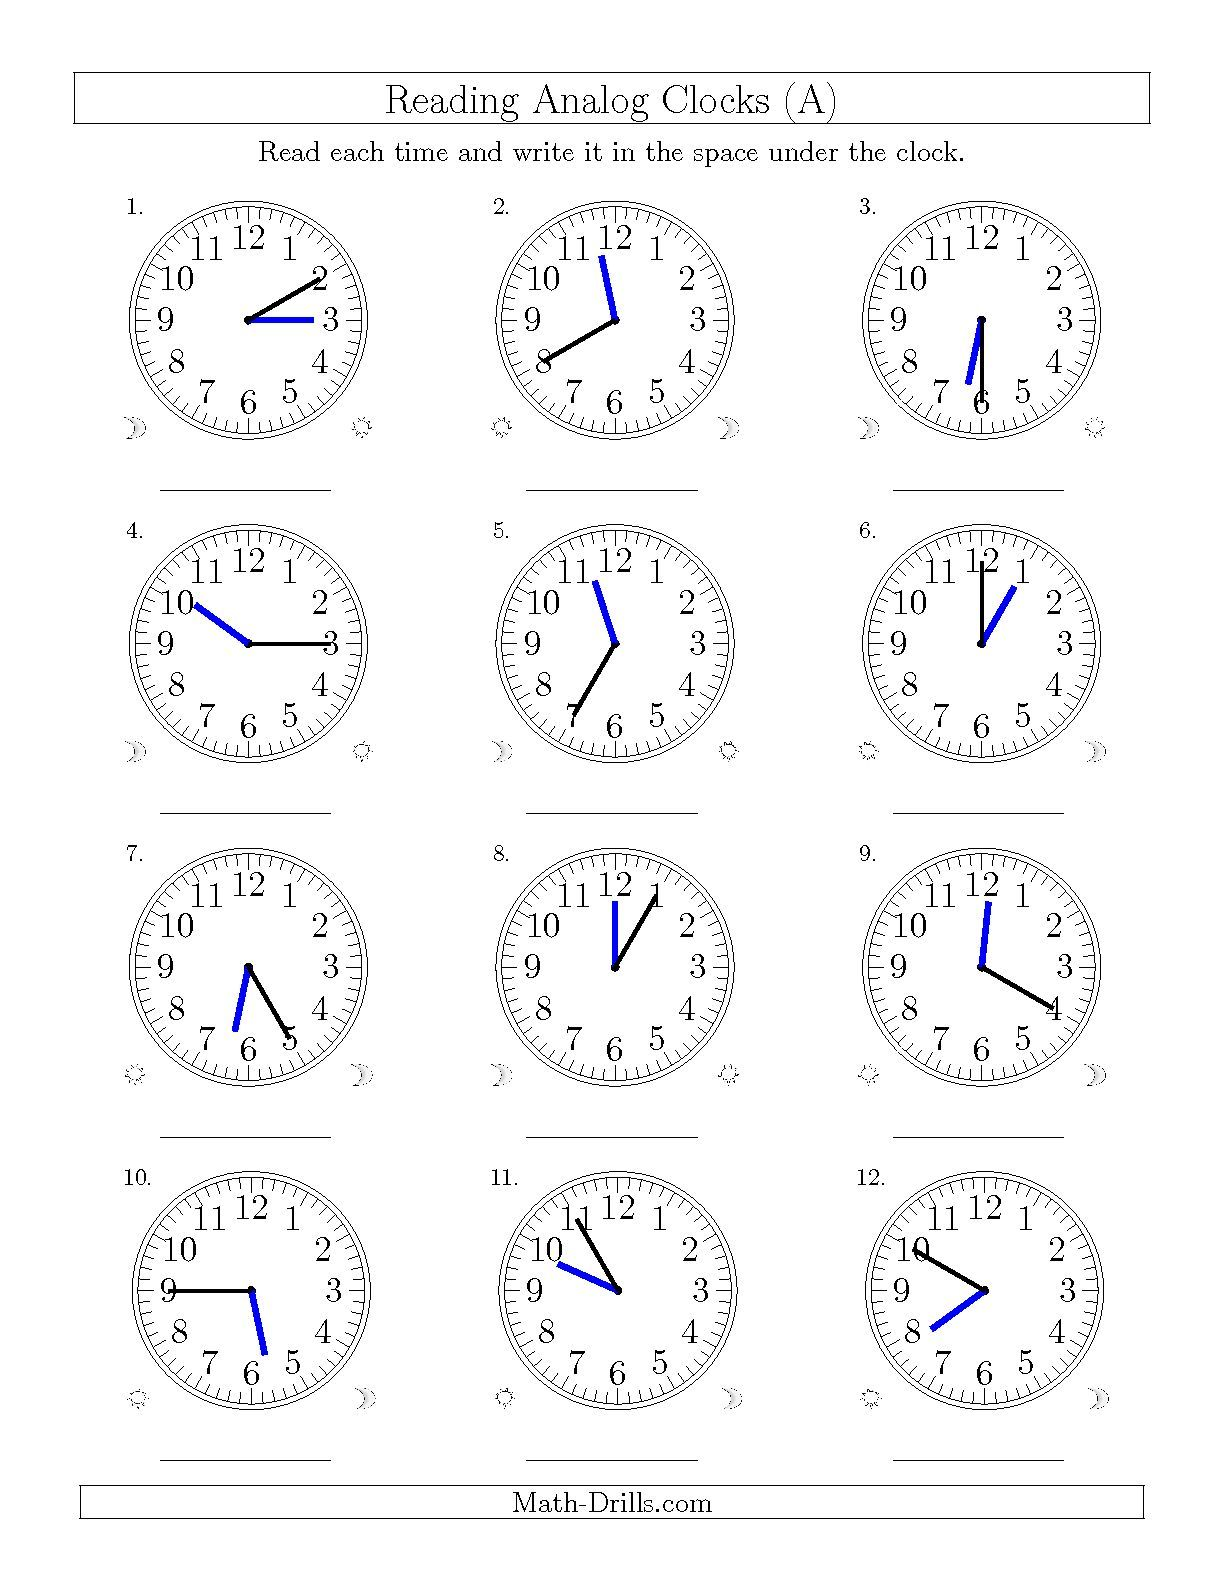 hight resolution of The Reading Time on 12 Hour Analog Clocks in 5 Minute Intervals (A) math  worksheet from the Time Wor…   Time worksheets